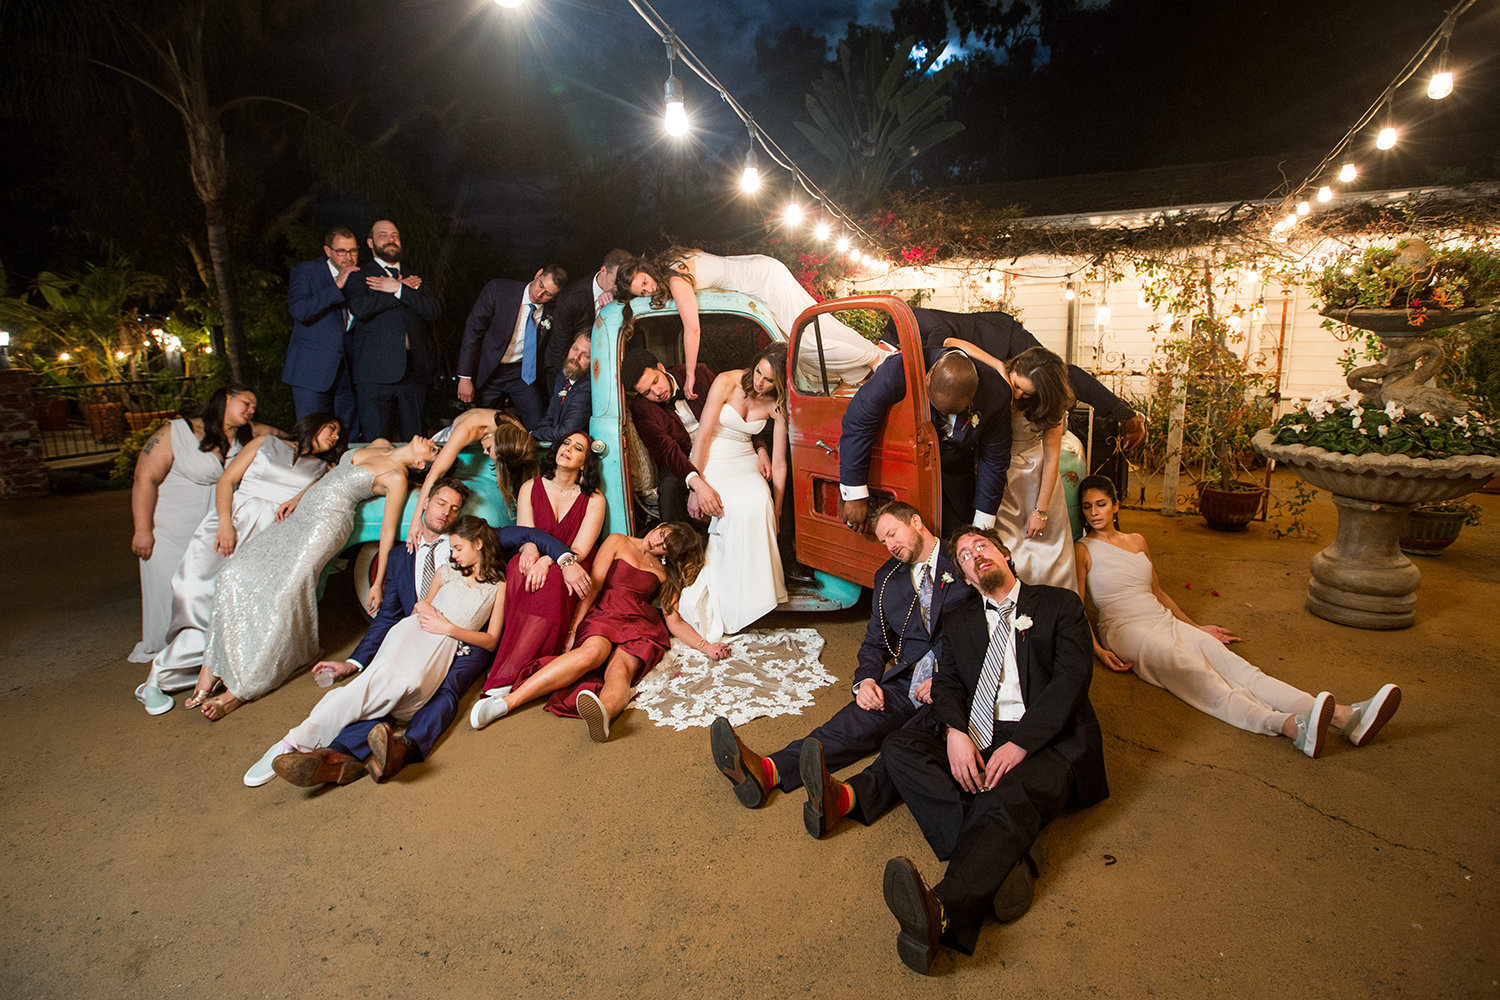 Funny Drunk Wedding Party Photo